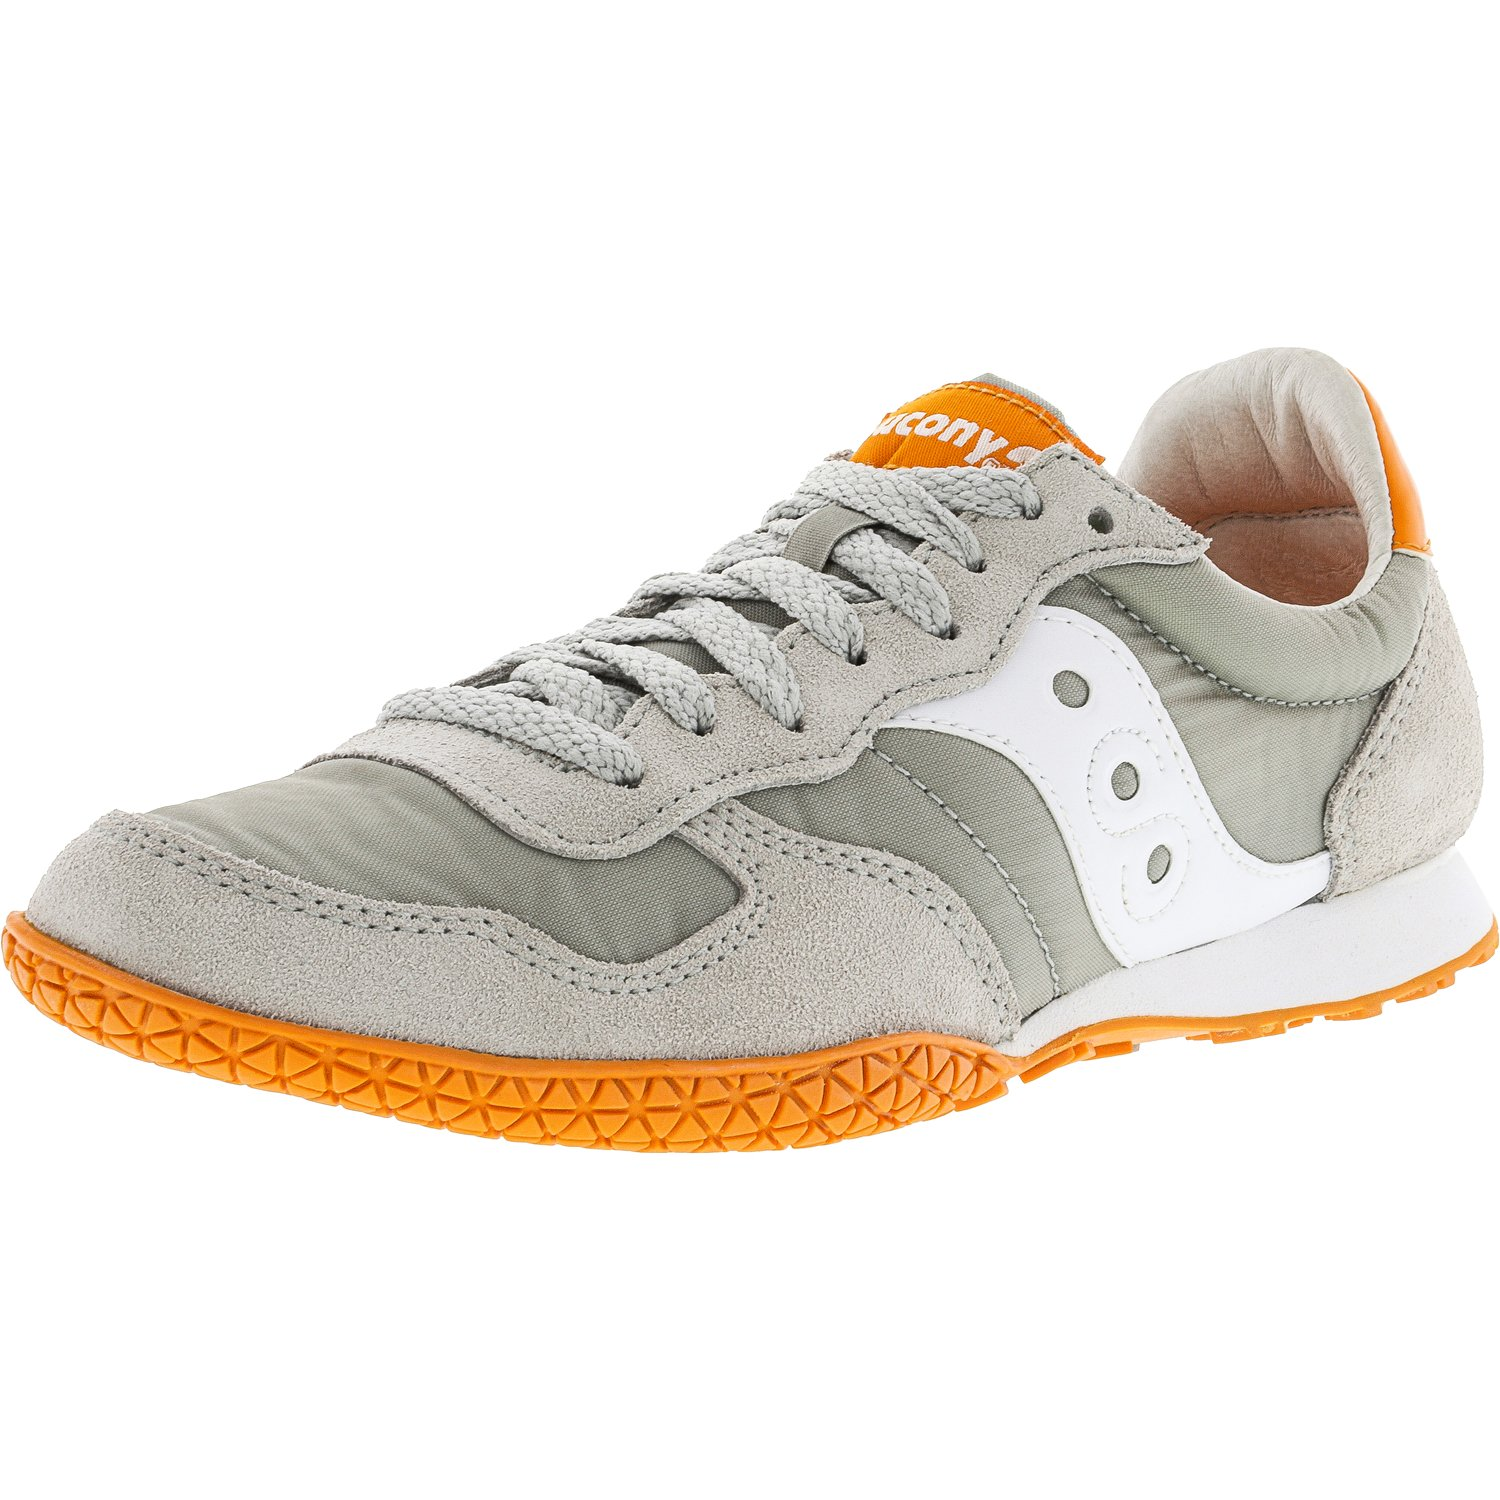 Saucony Men's Bullet Grey   Cream Ankle-High Fashion Sneaker 8M by Saucony